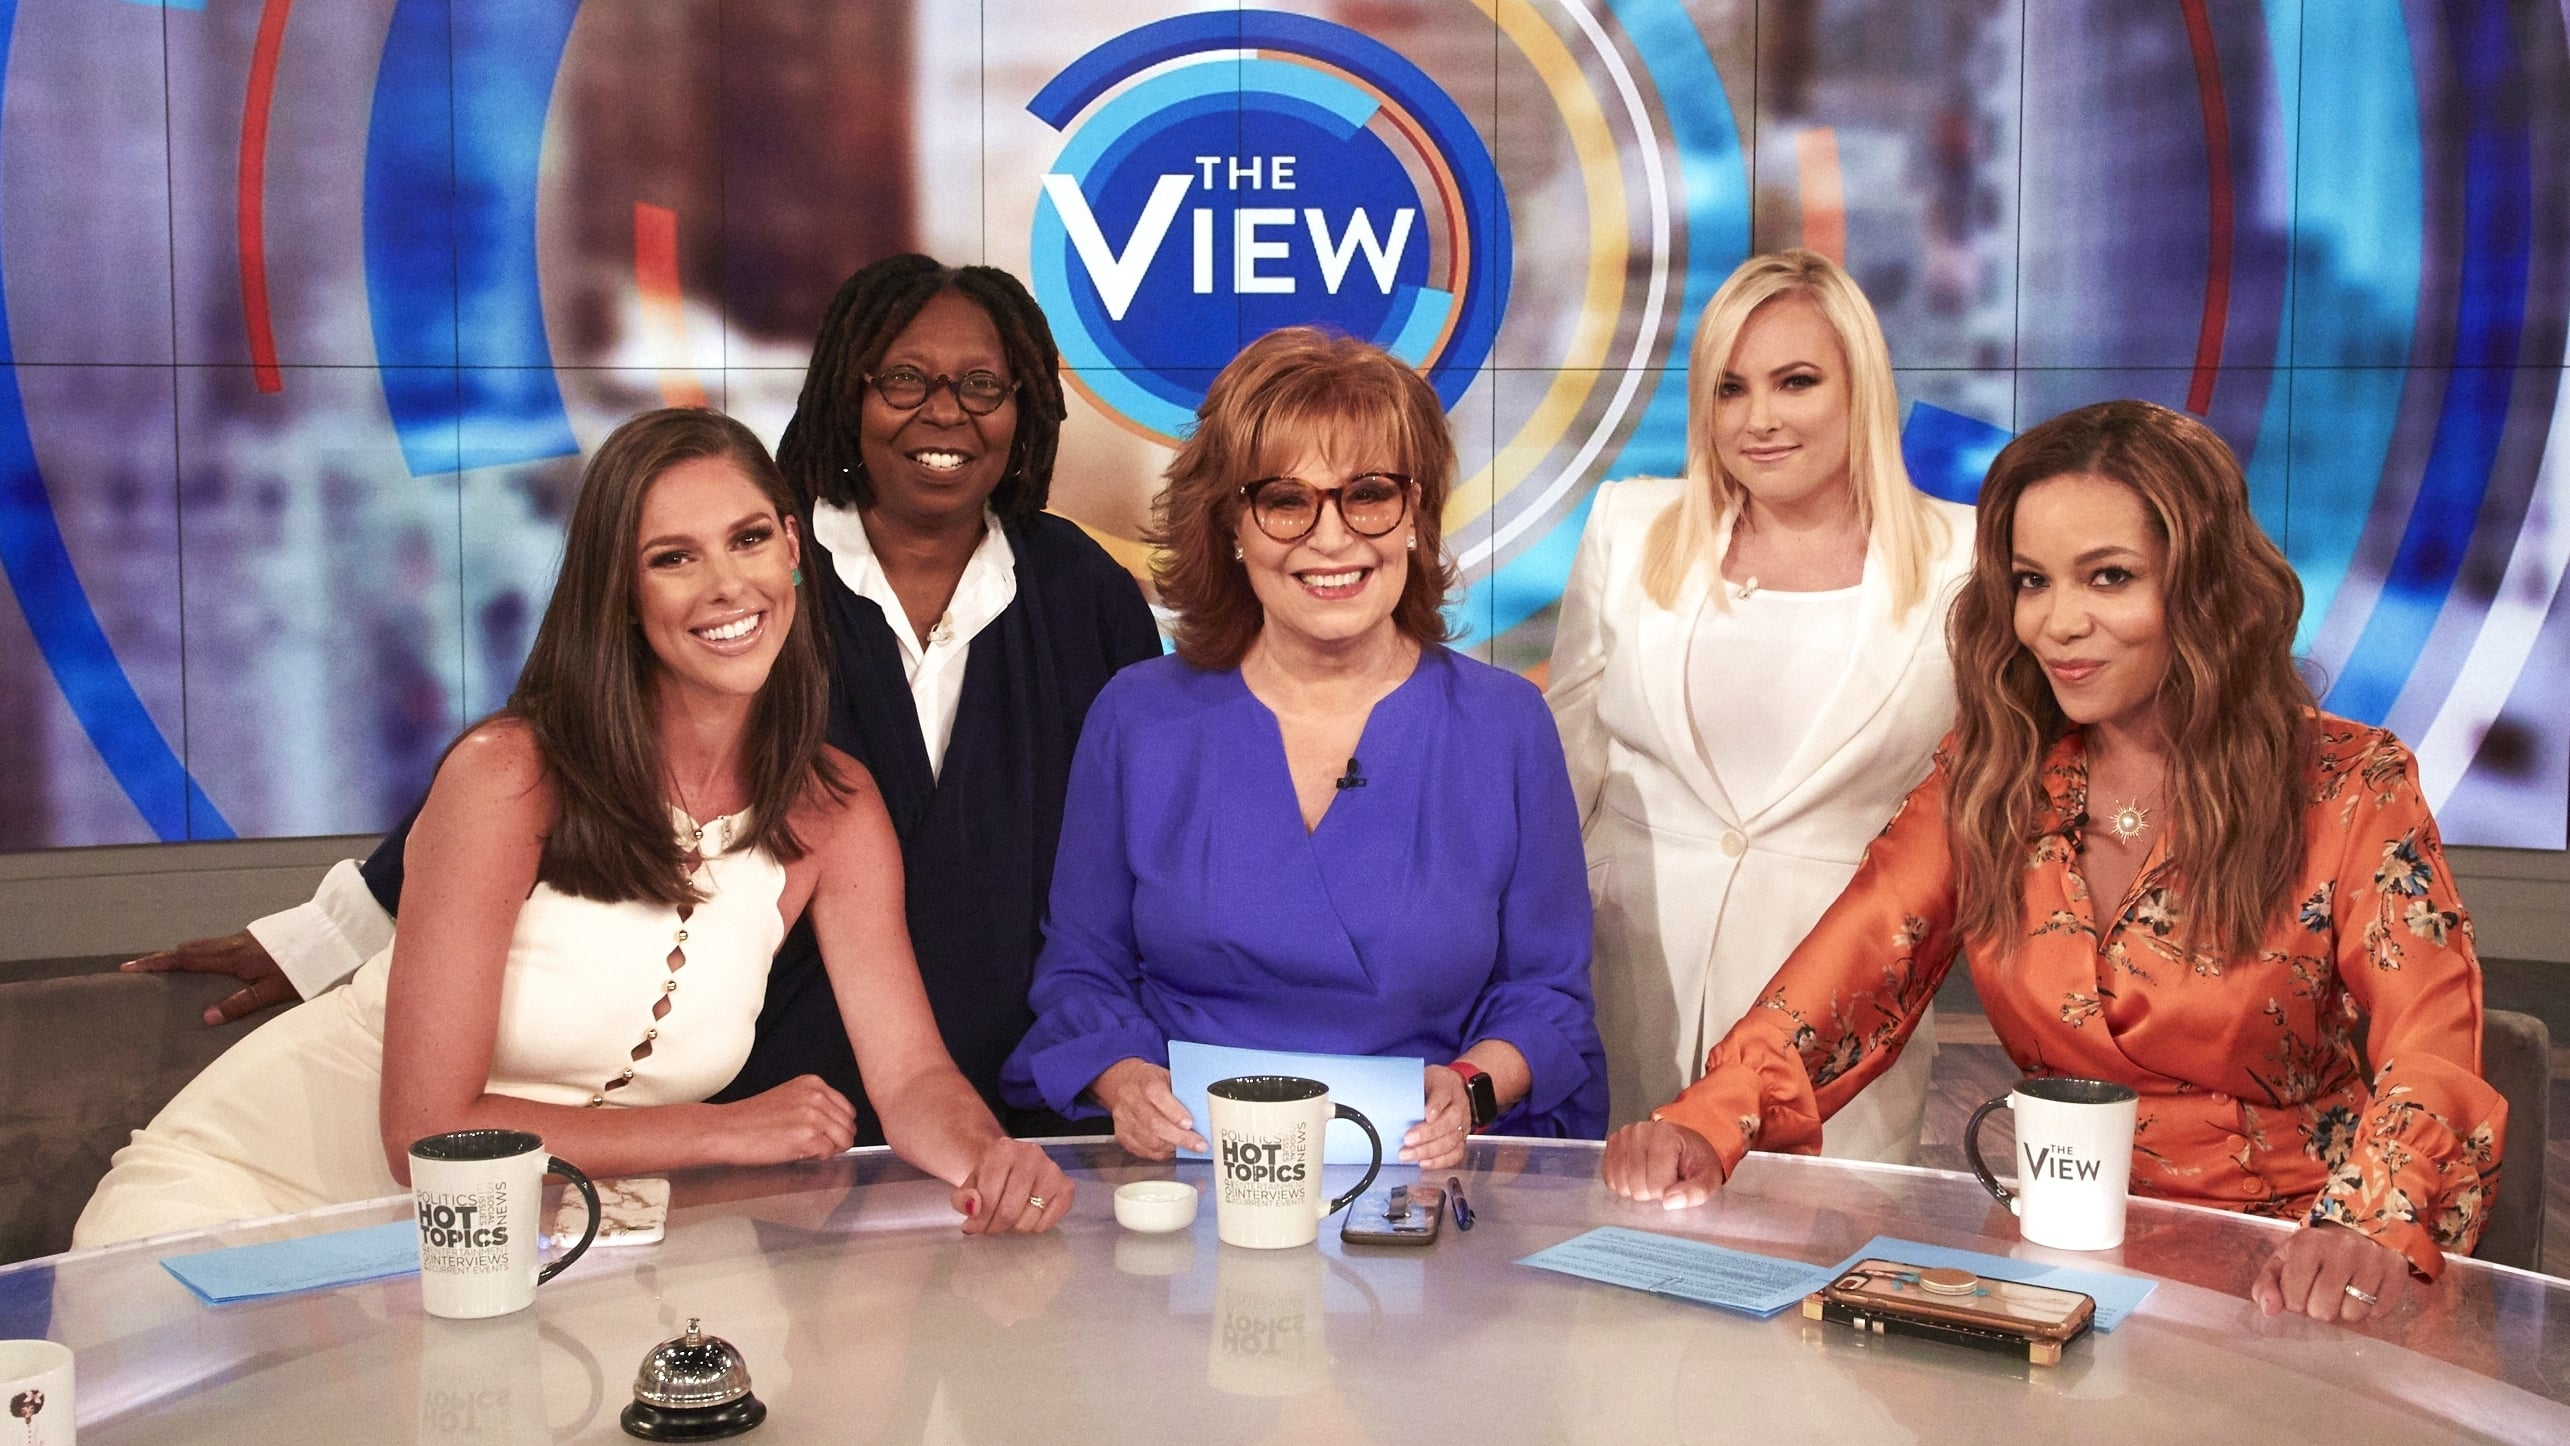 The View - Season 3 Episode 77 : Season 3, Episode 77